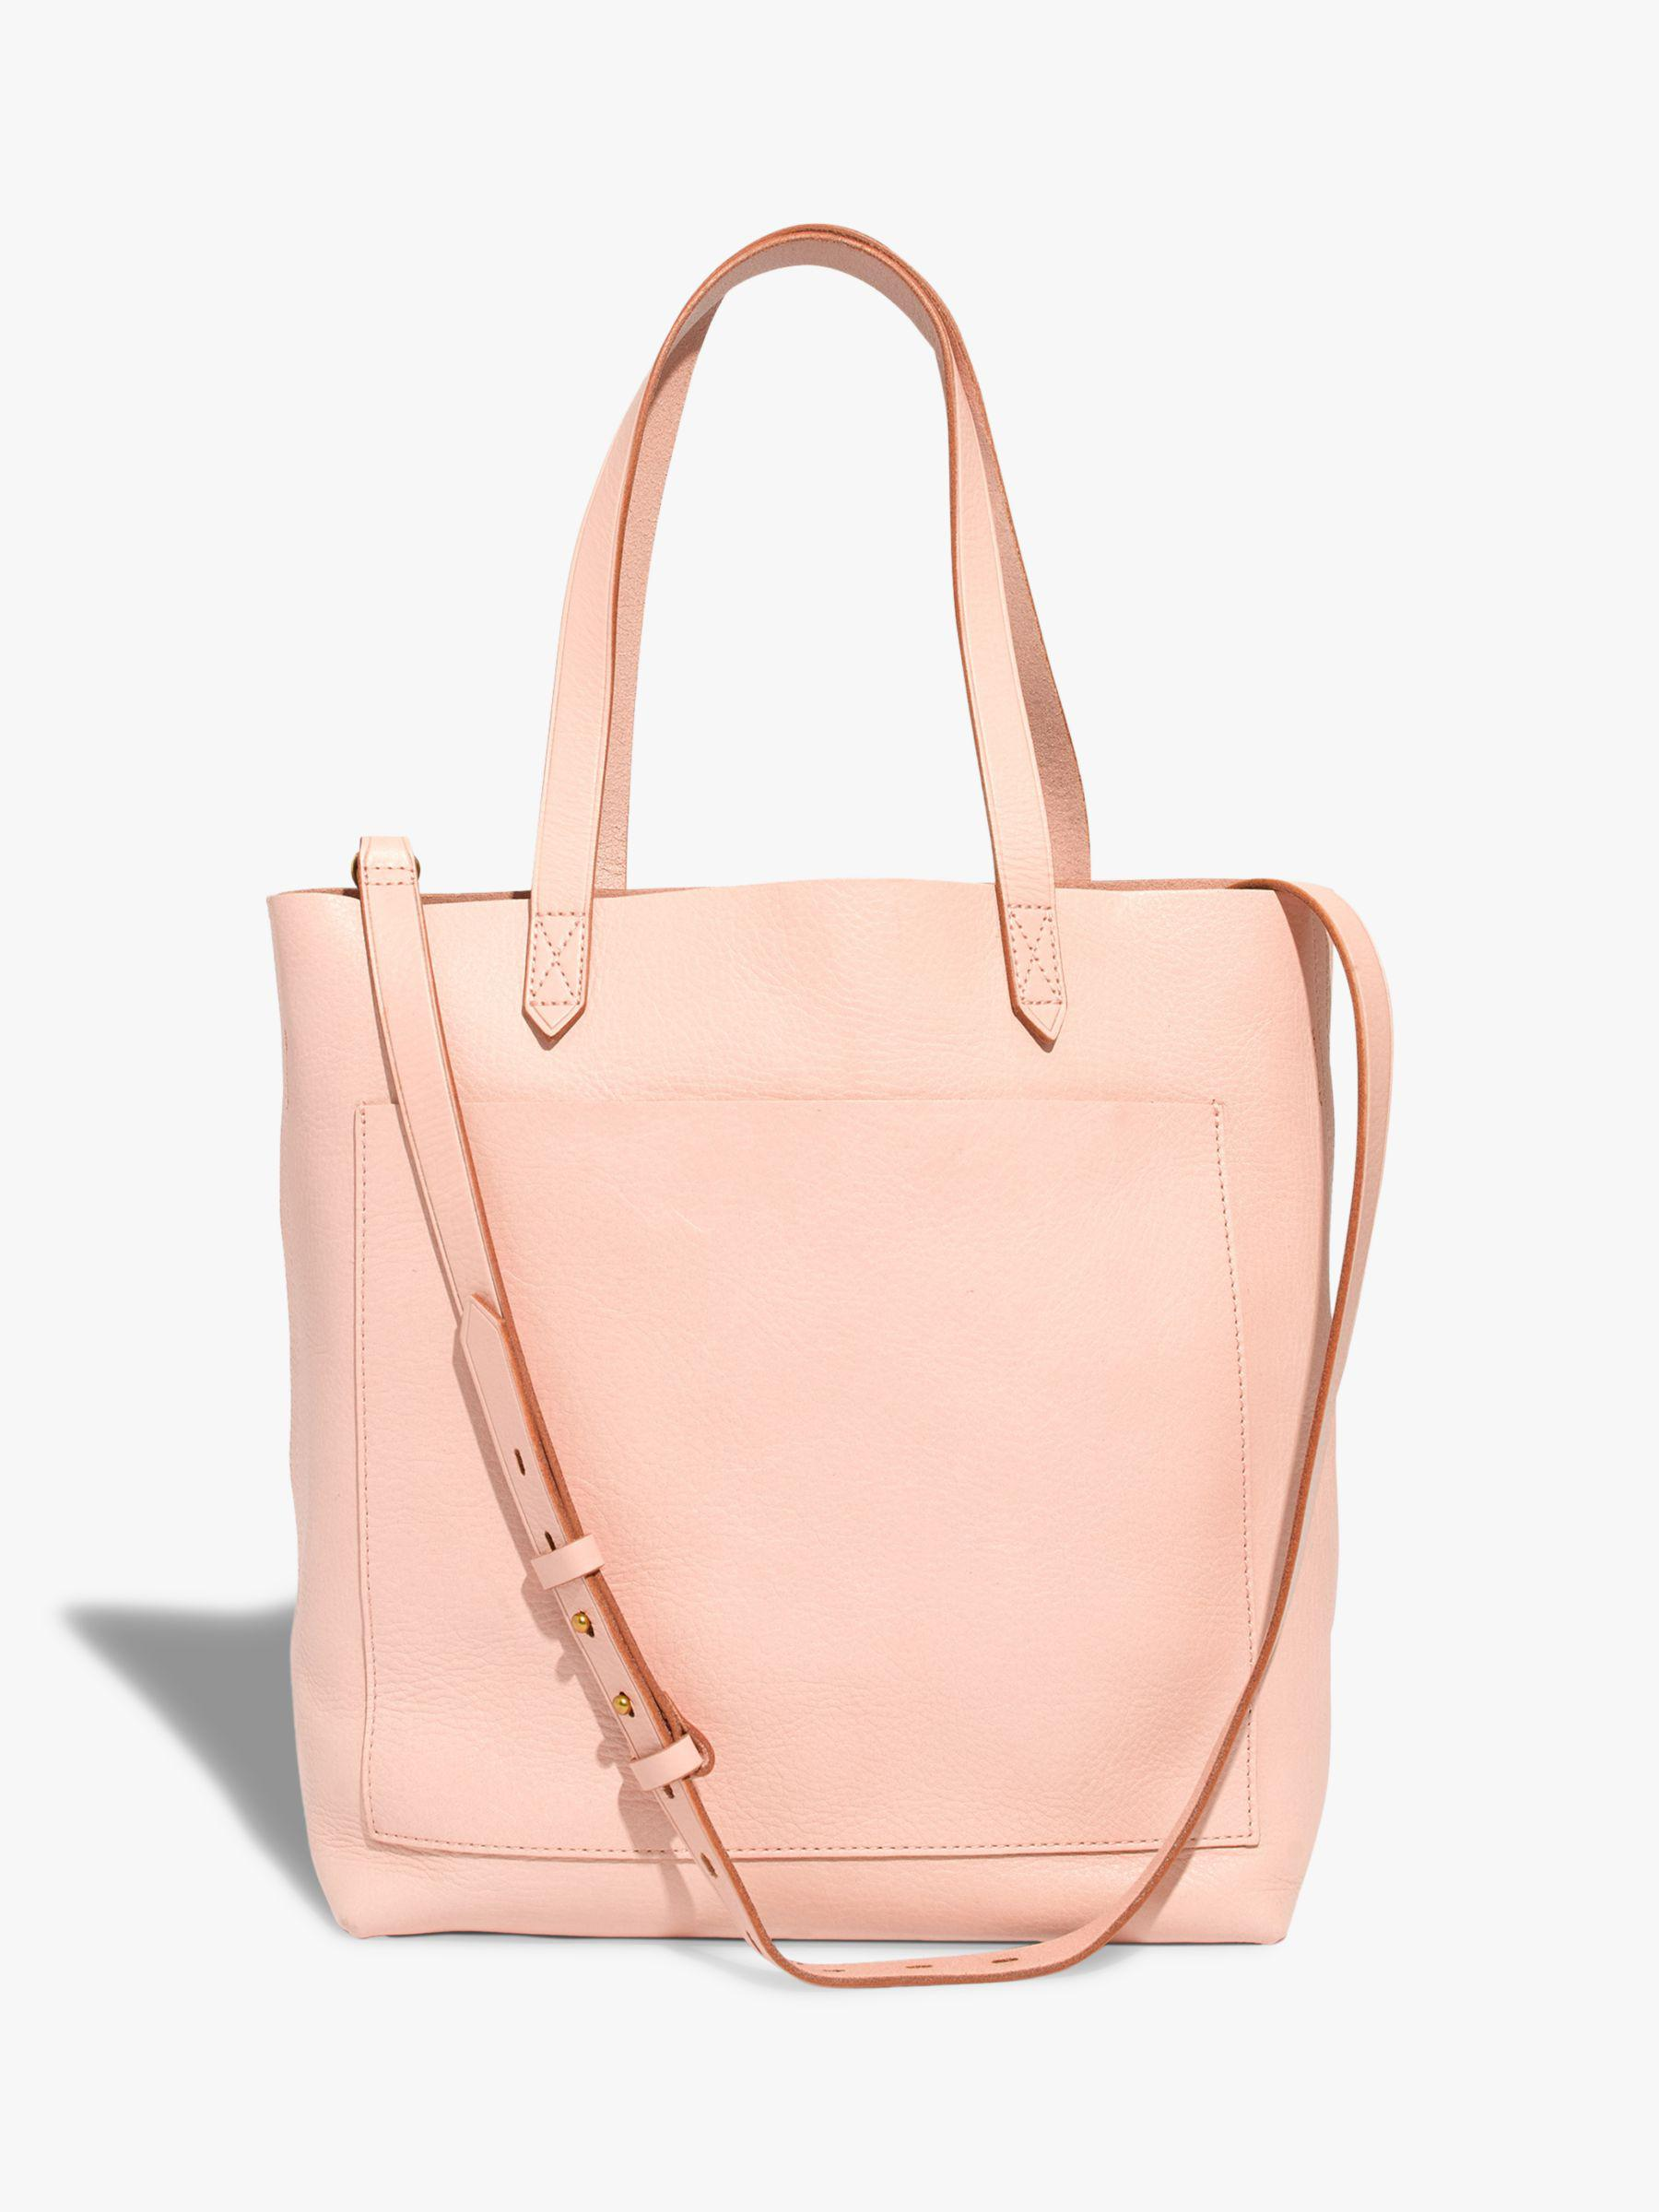 6b696c34b Madewell Leather Medium Transport Tote Bag in Pink - Lyst